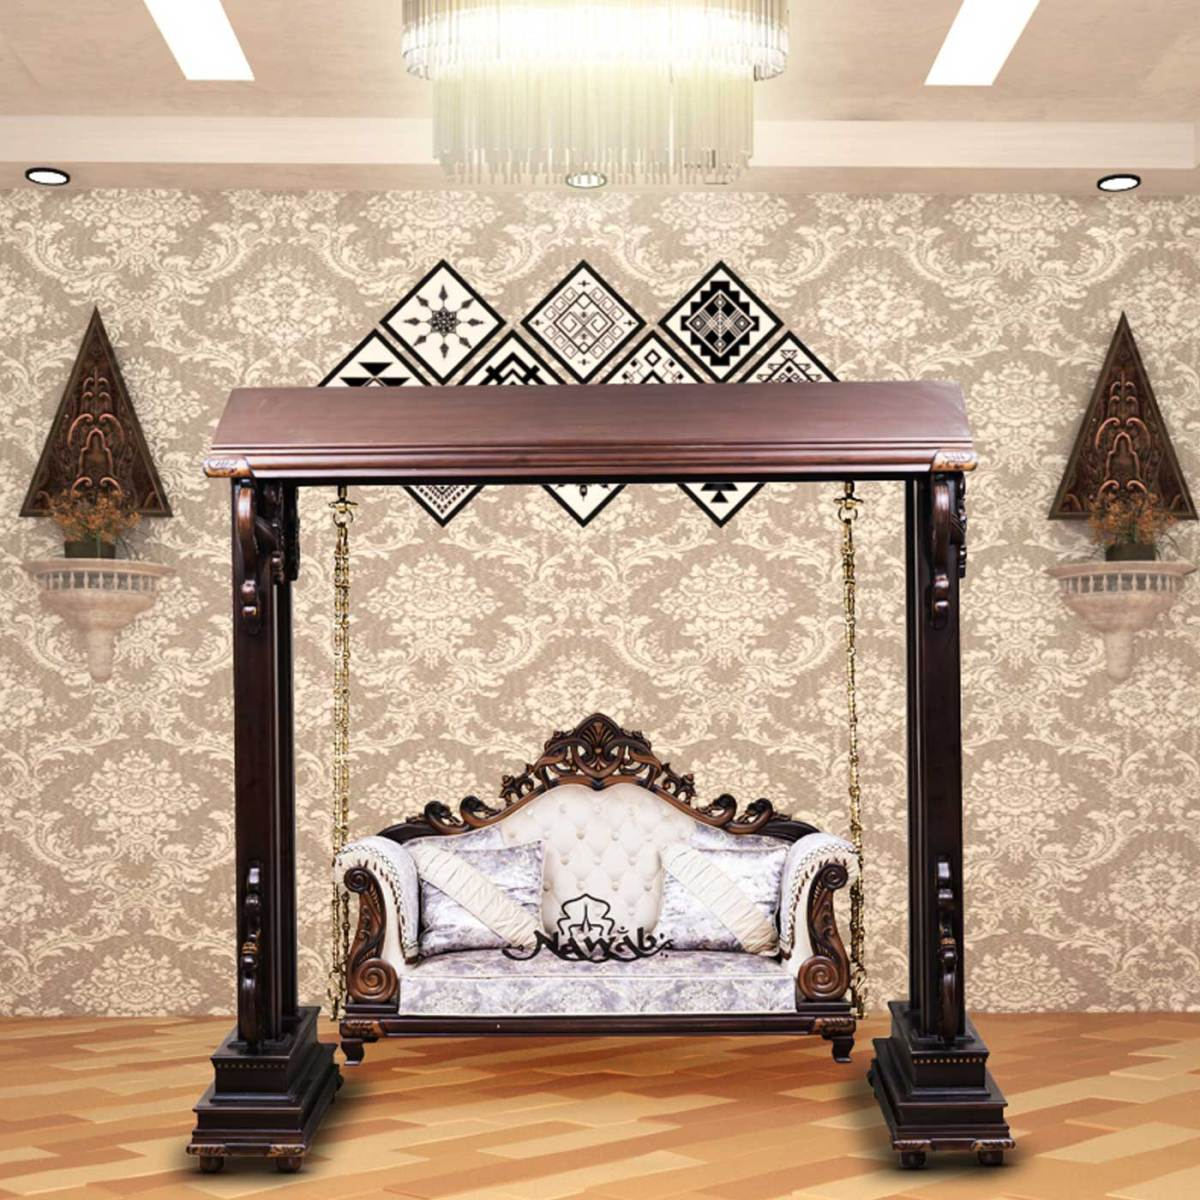 wallnut-mat-polish-solid-wooden-teak-with-carving-cotton-pattern-fabric-center-background